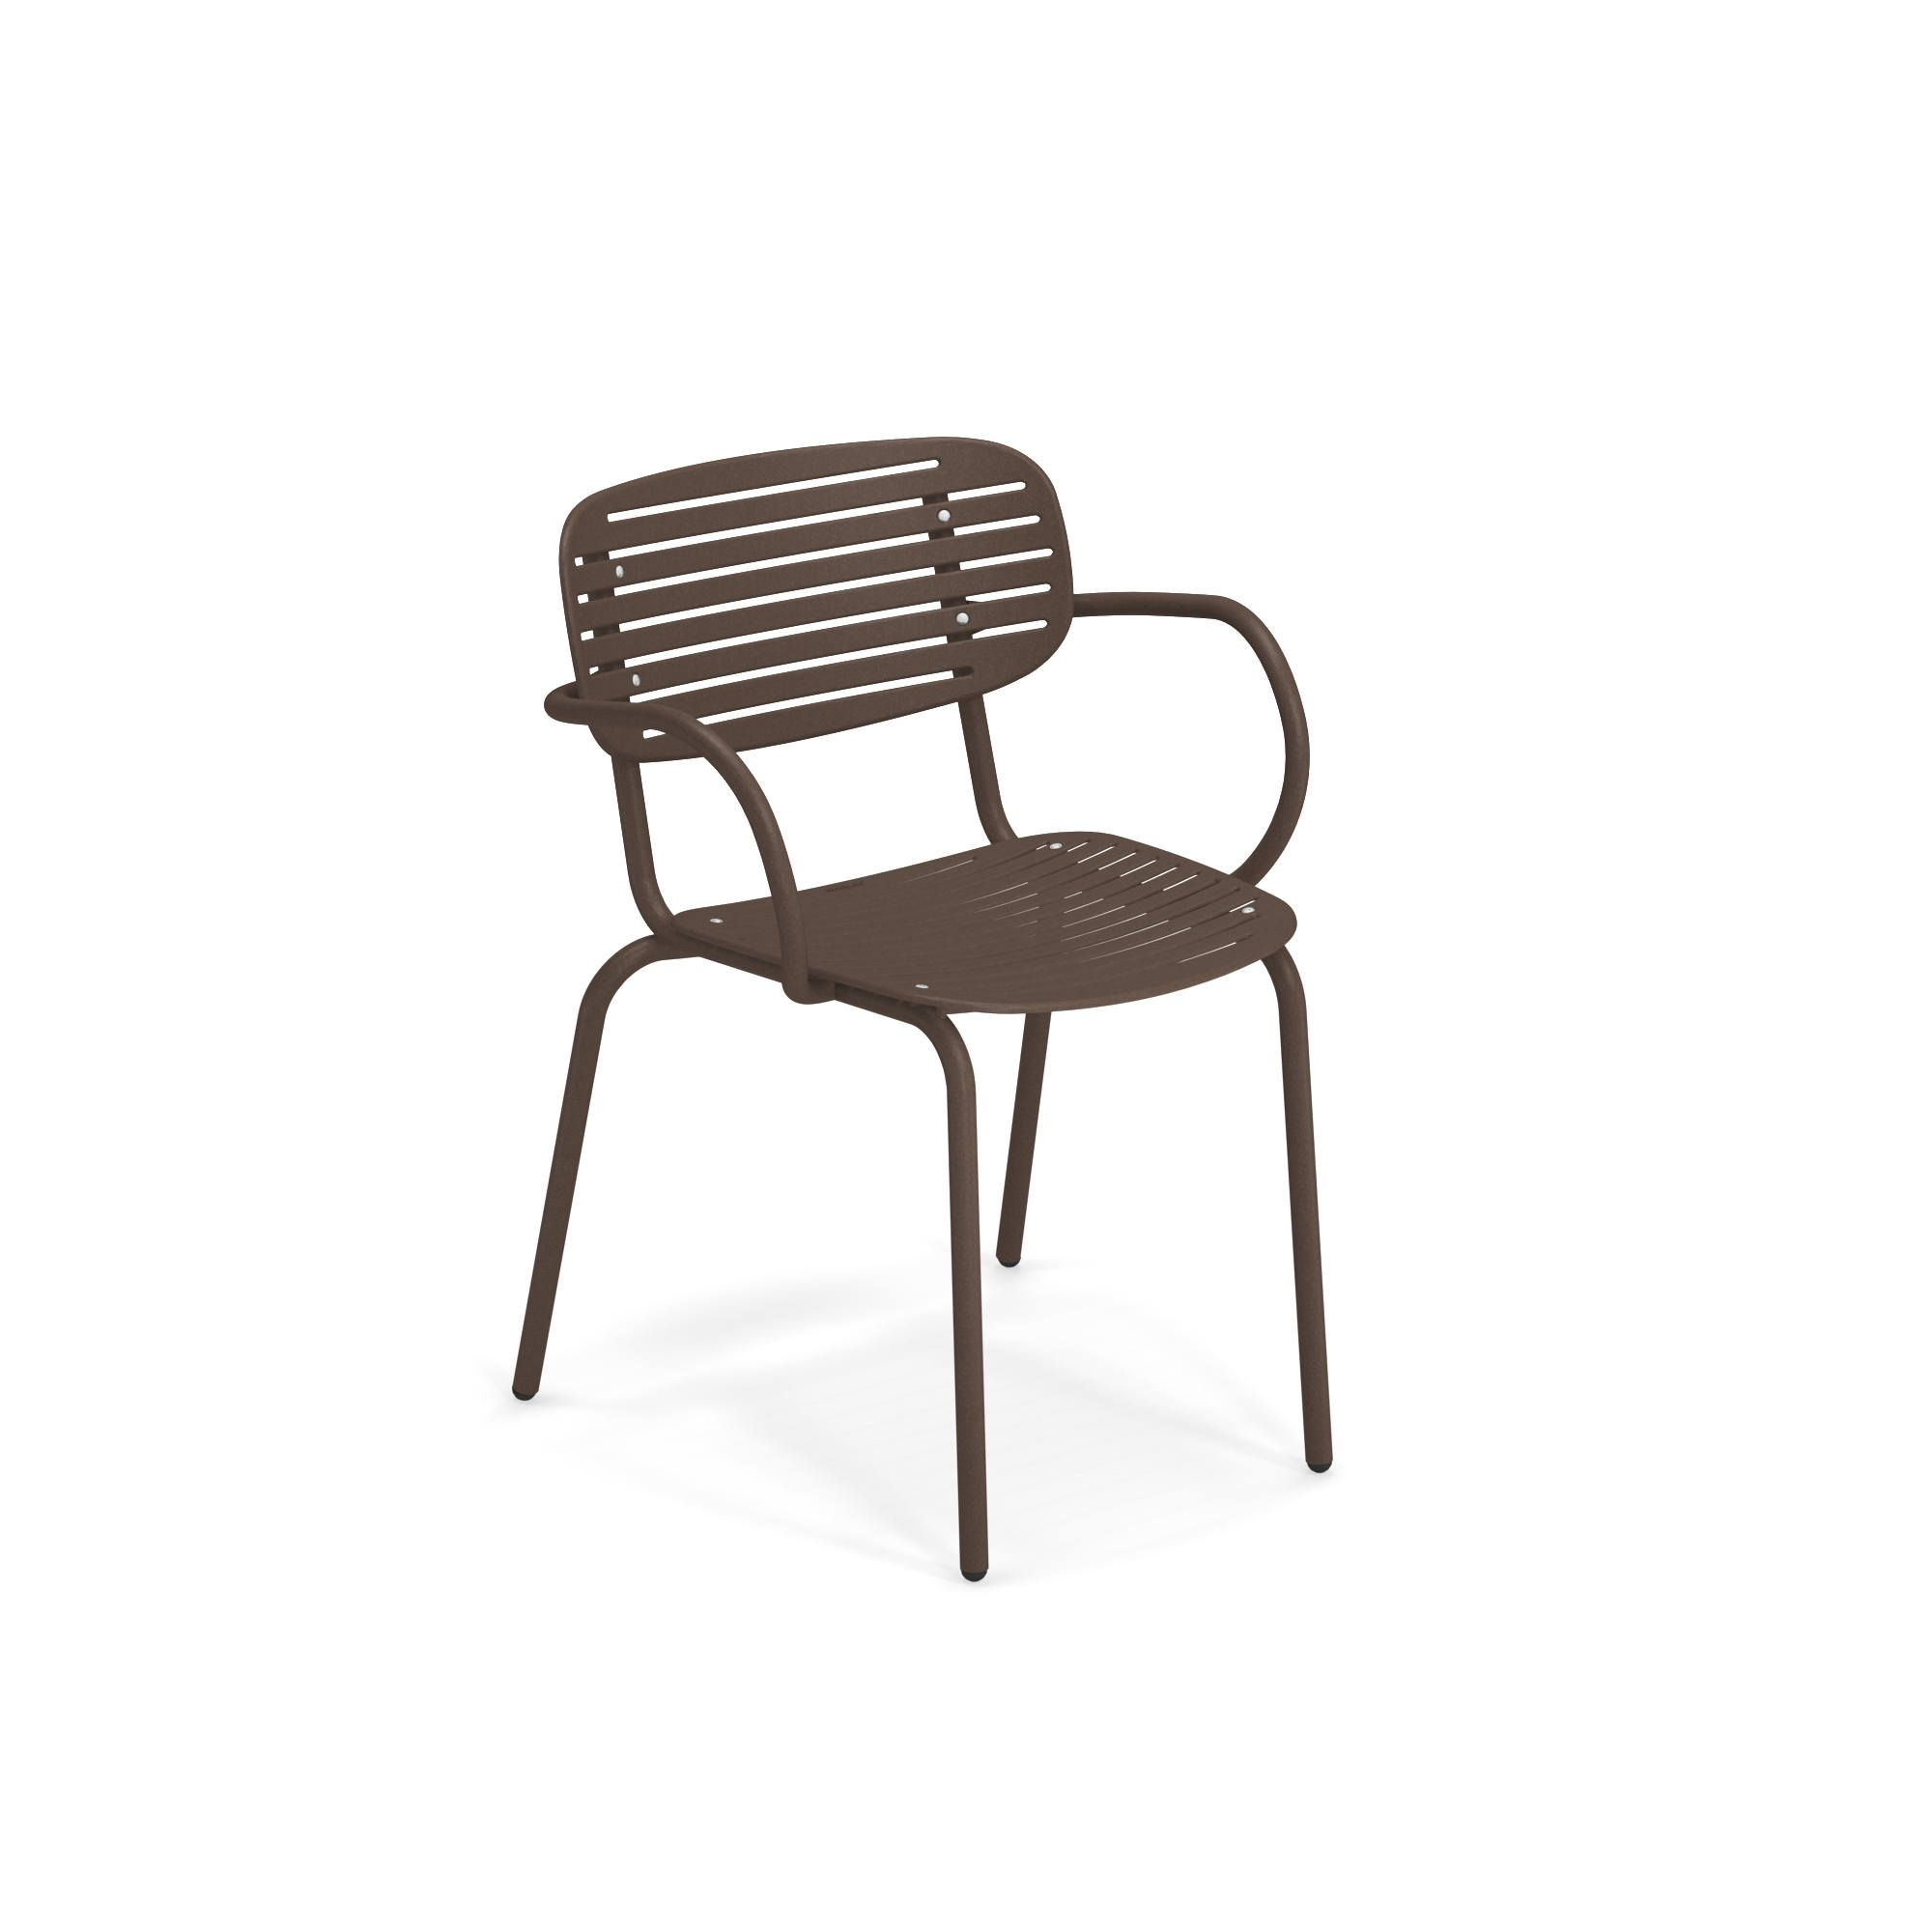 emuamericas, llc 640-41 chair, armchair, stacking, outdoor